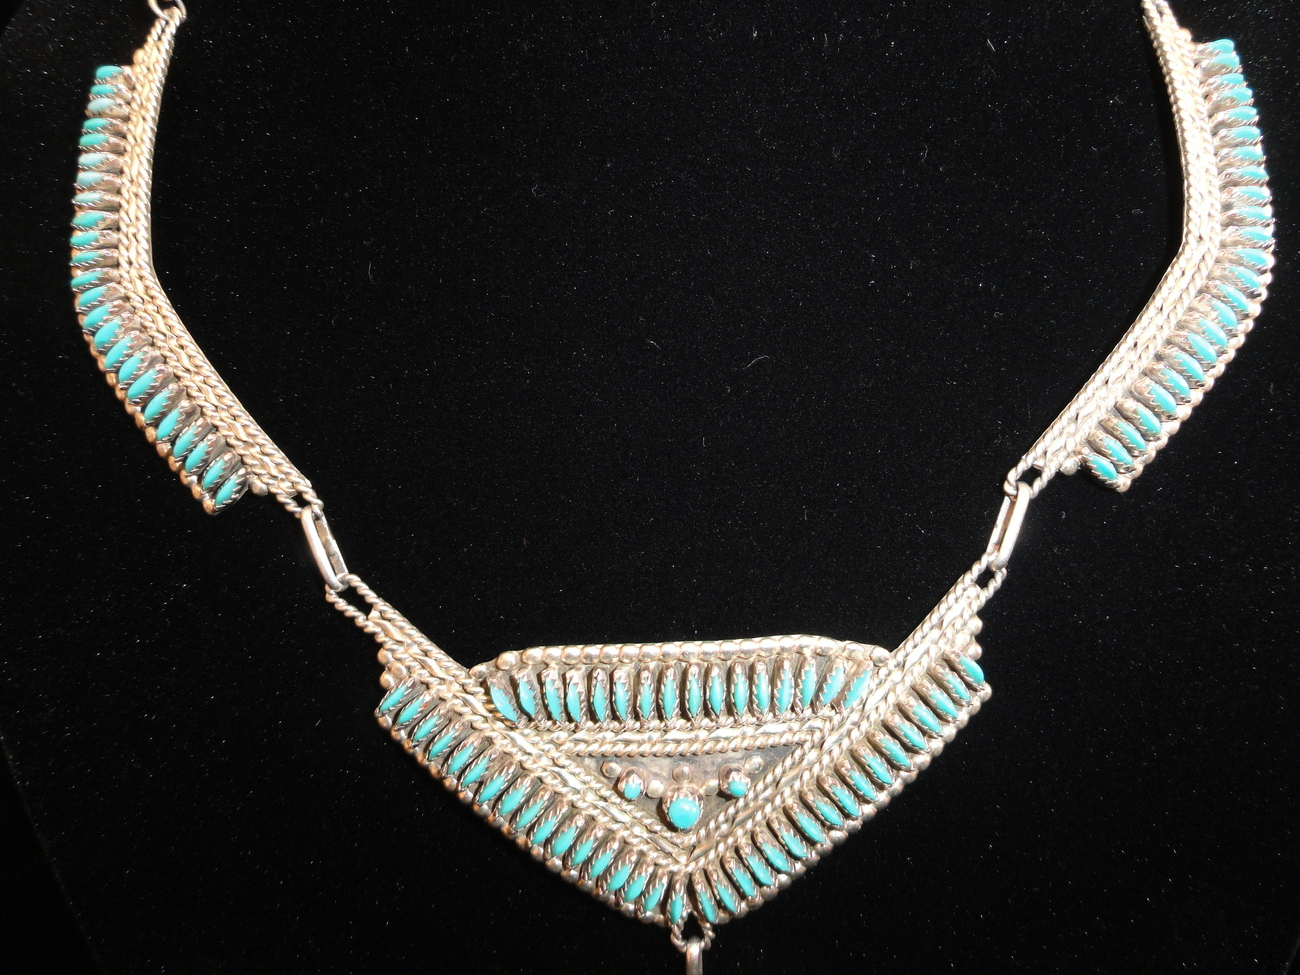 Nativeamericanzunisterlingneedlepointturquoisenecklace__3_